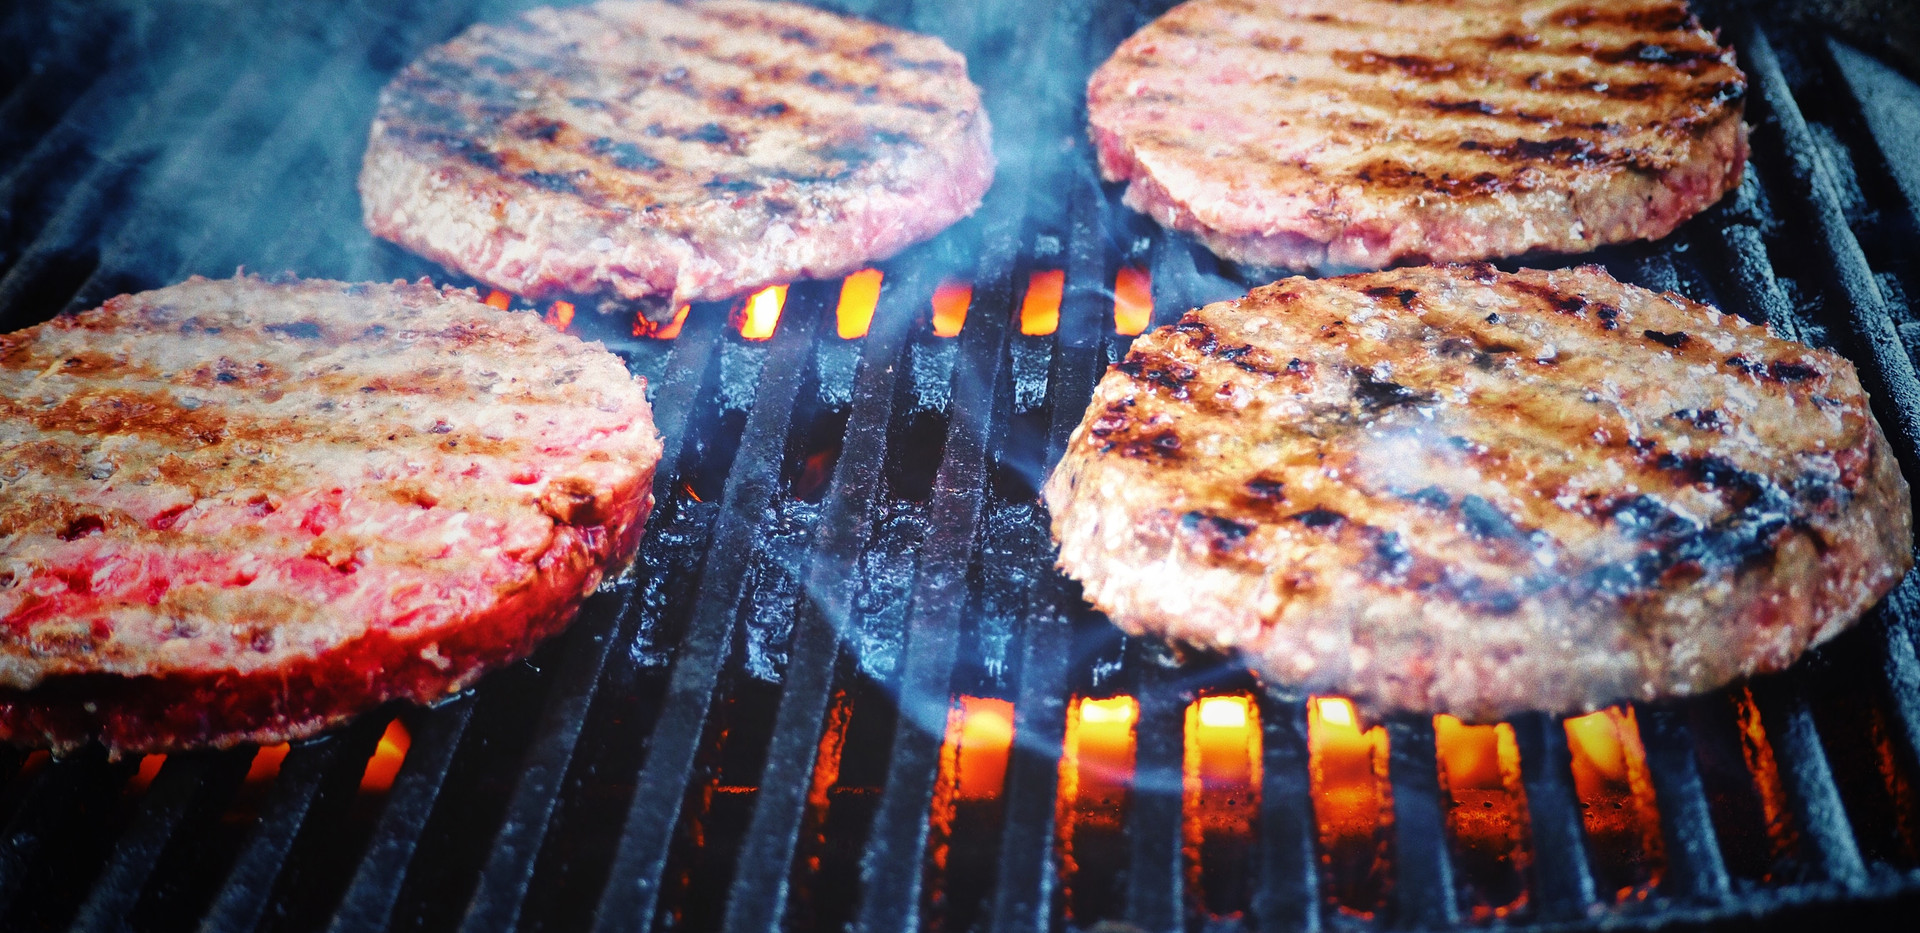 beef-charcoal-close-up-776314.jpg